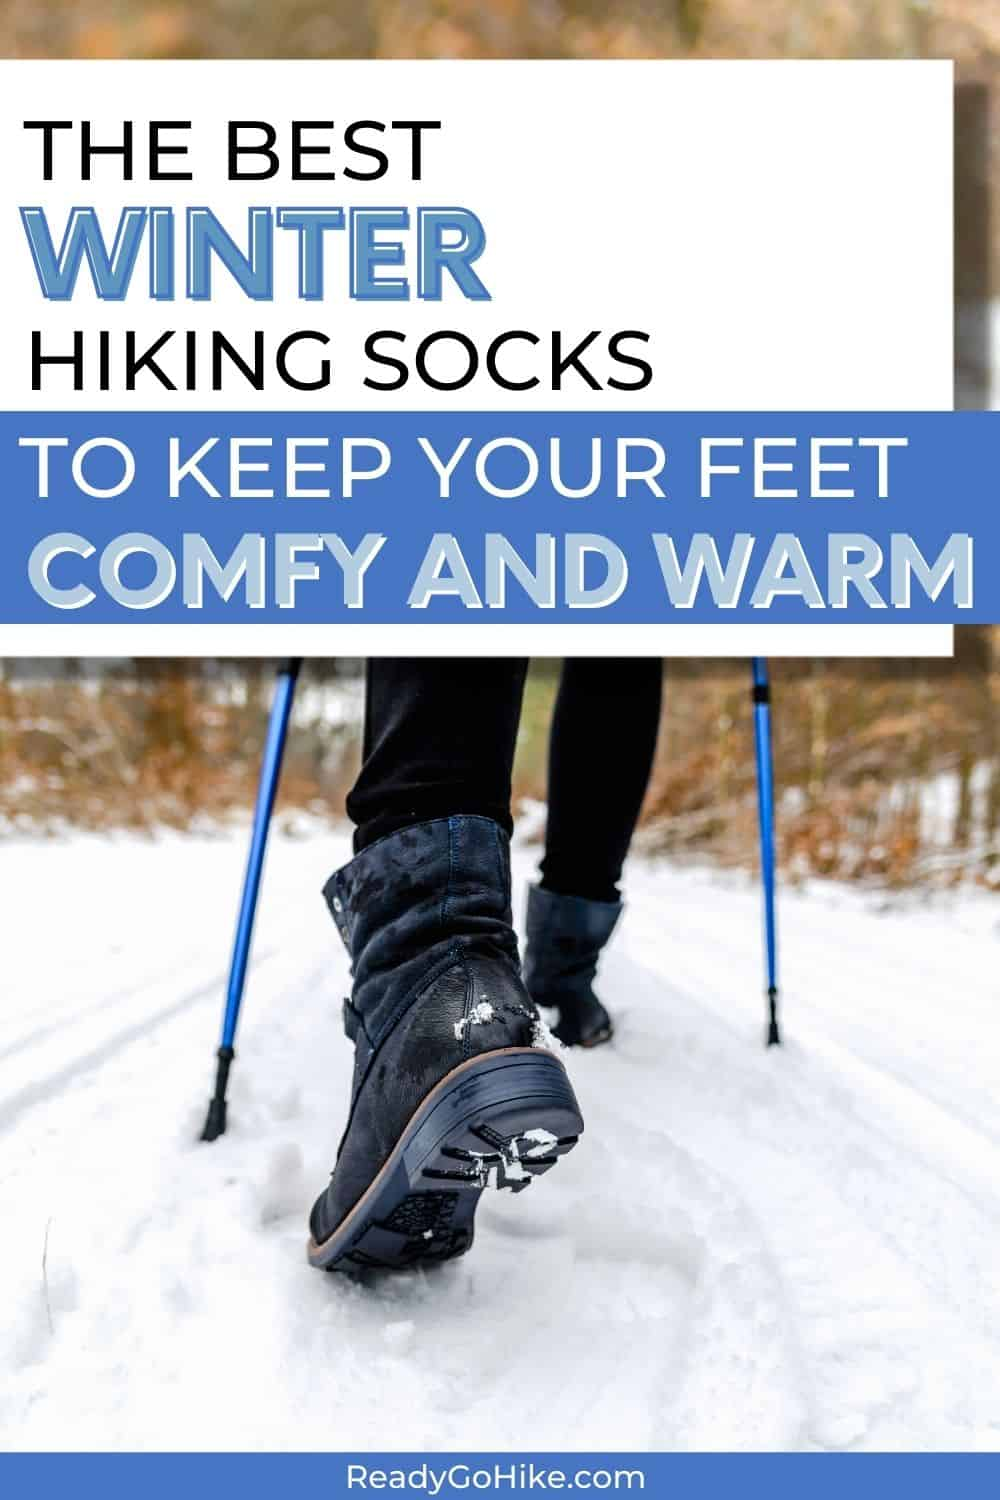 Close up picture of hiker's boot in snow with text overlay The Best Winter Hiking Socks to Keep Your Feet Comfy and Warm